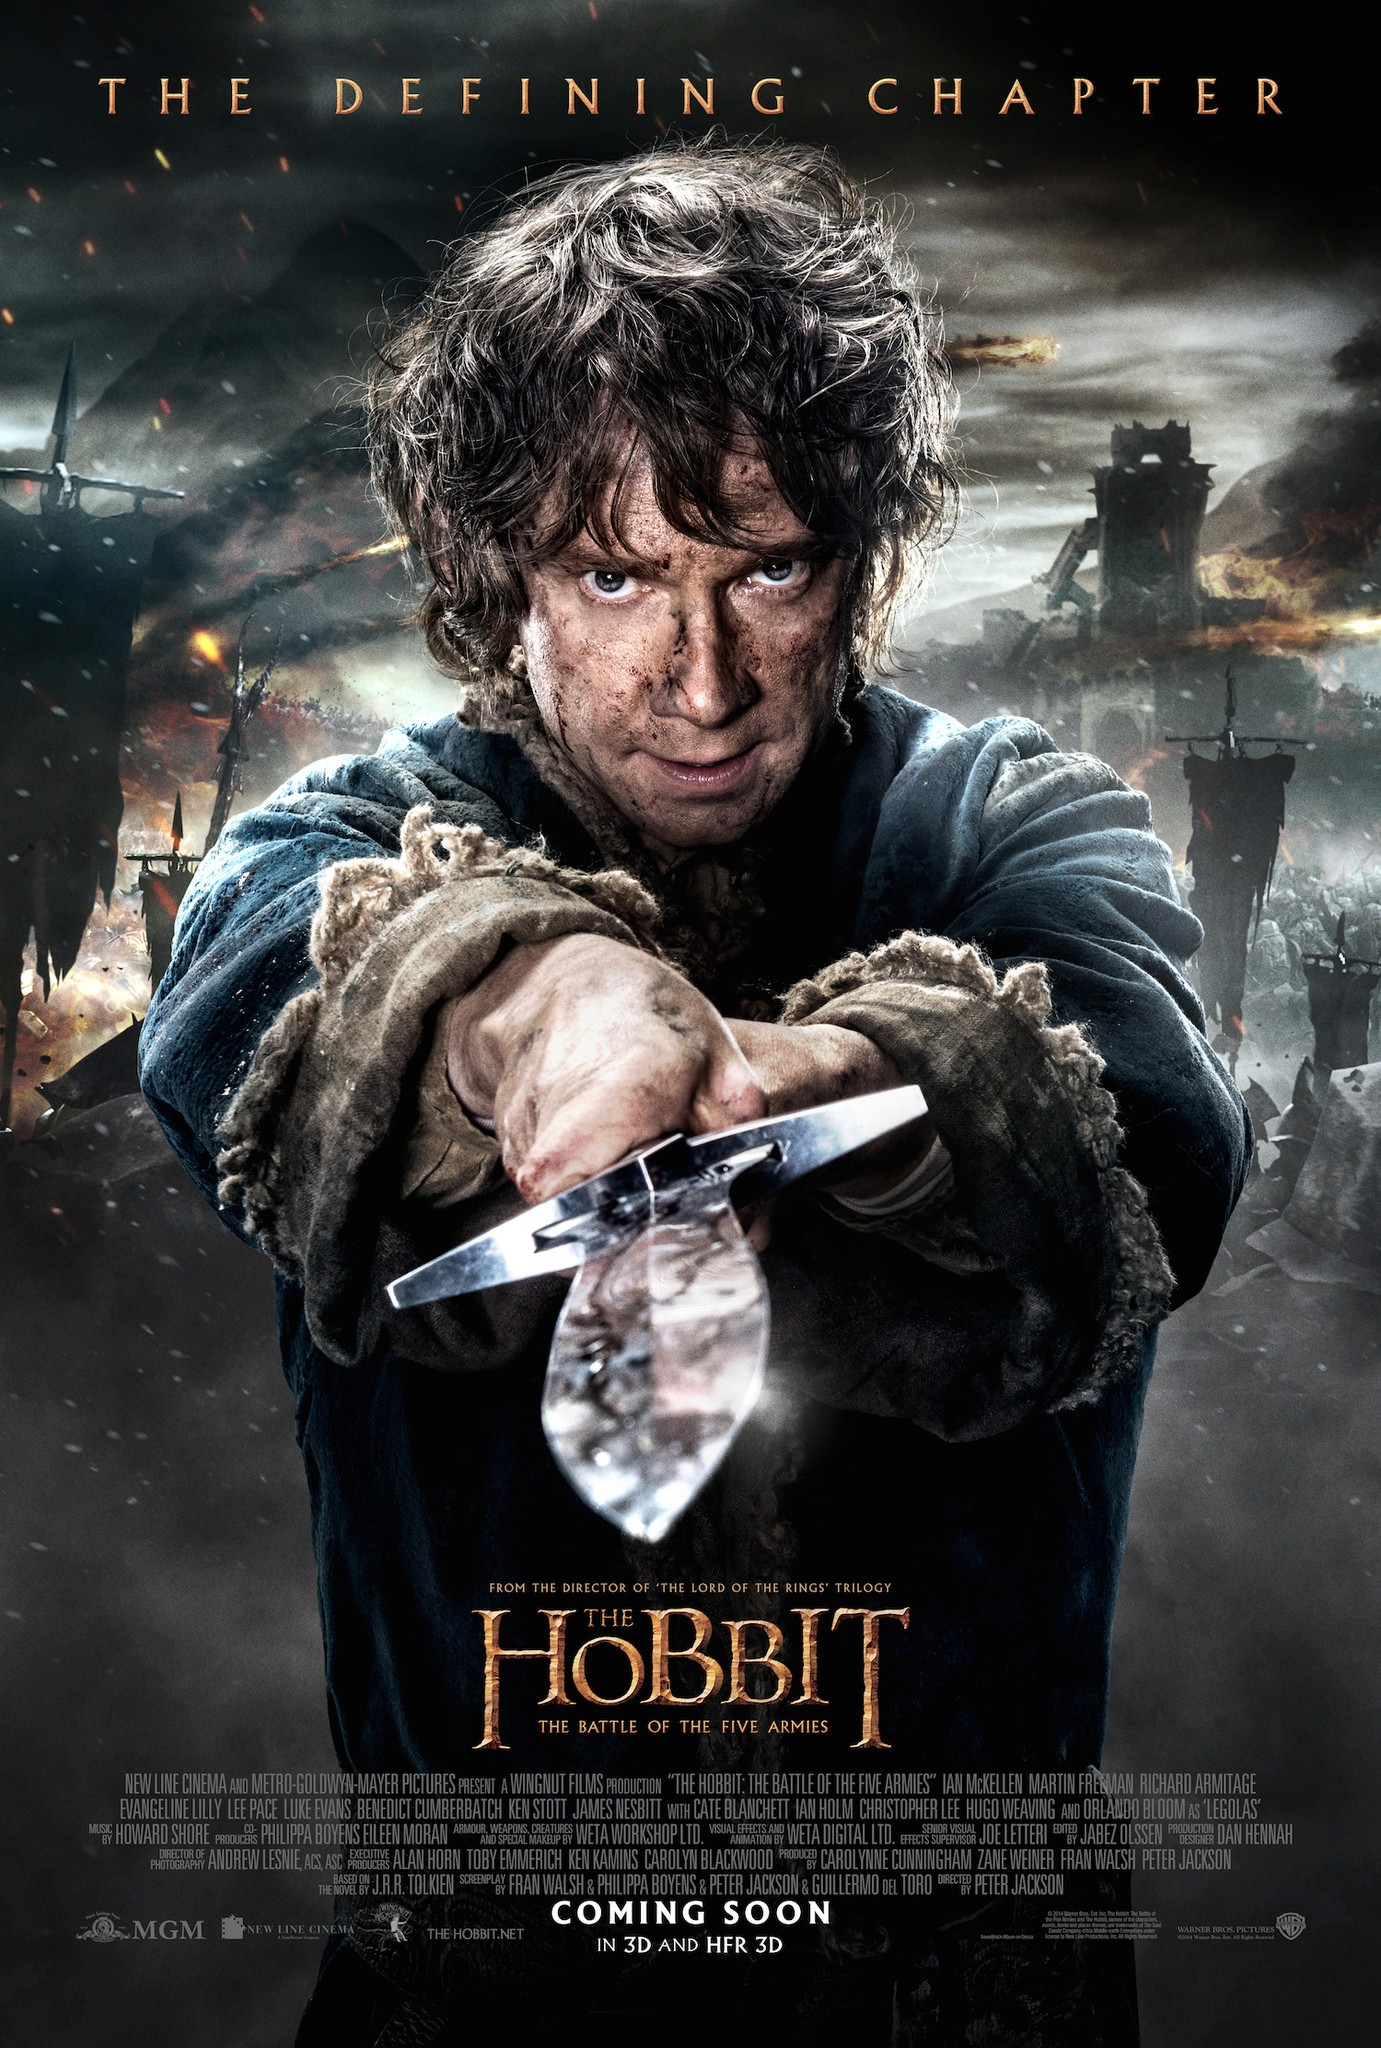 The Hobbit The Battle of the Five Armies-Official Poster Banner XXLG-07OUTUBRO2014